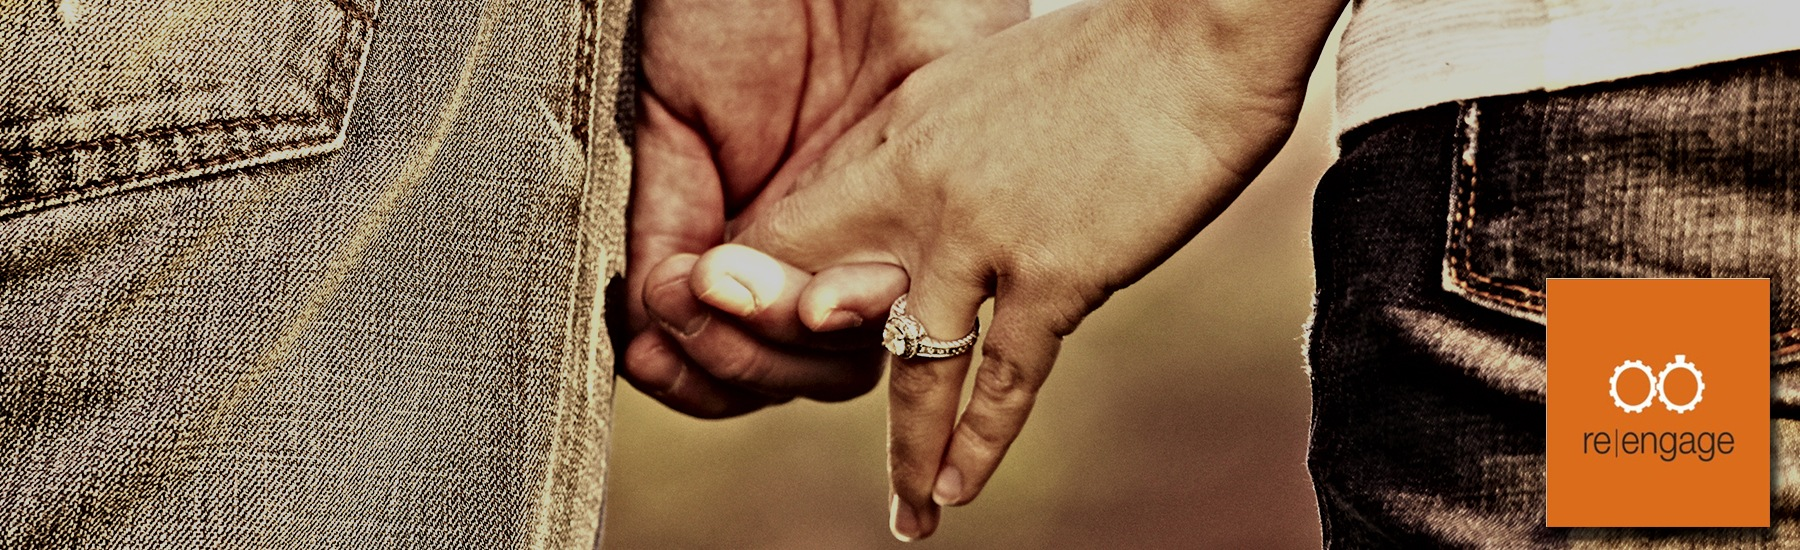 Adults : Re|engage Marriage Support